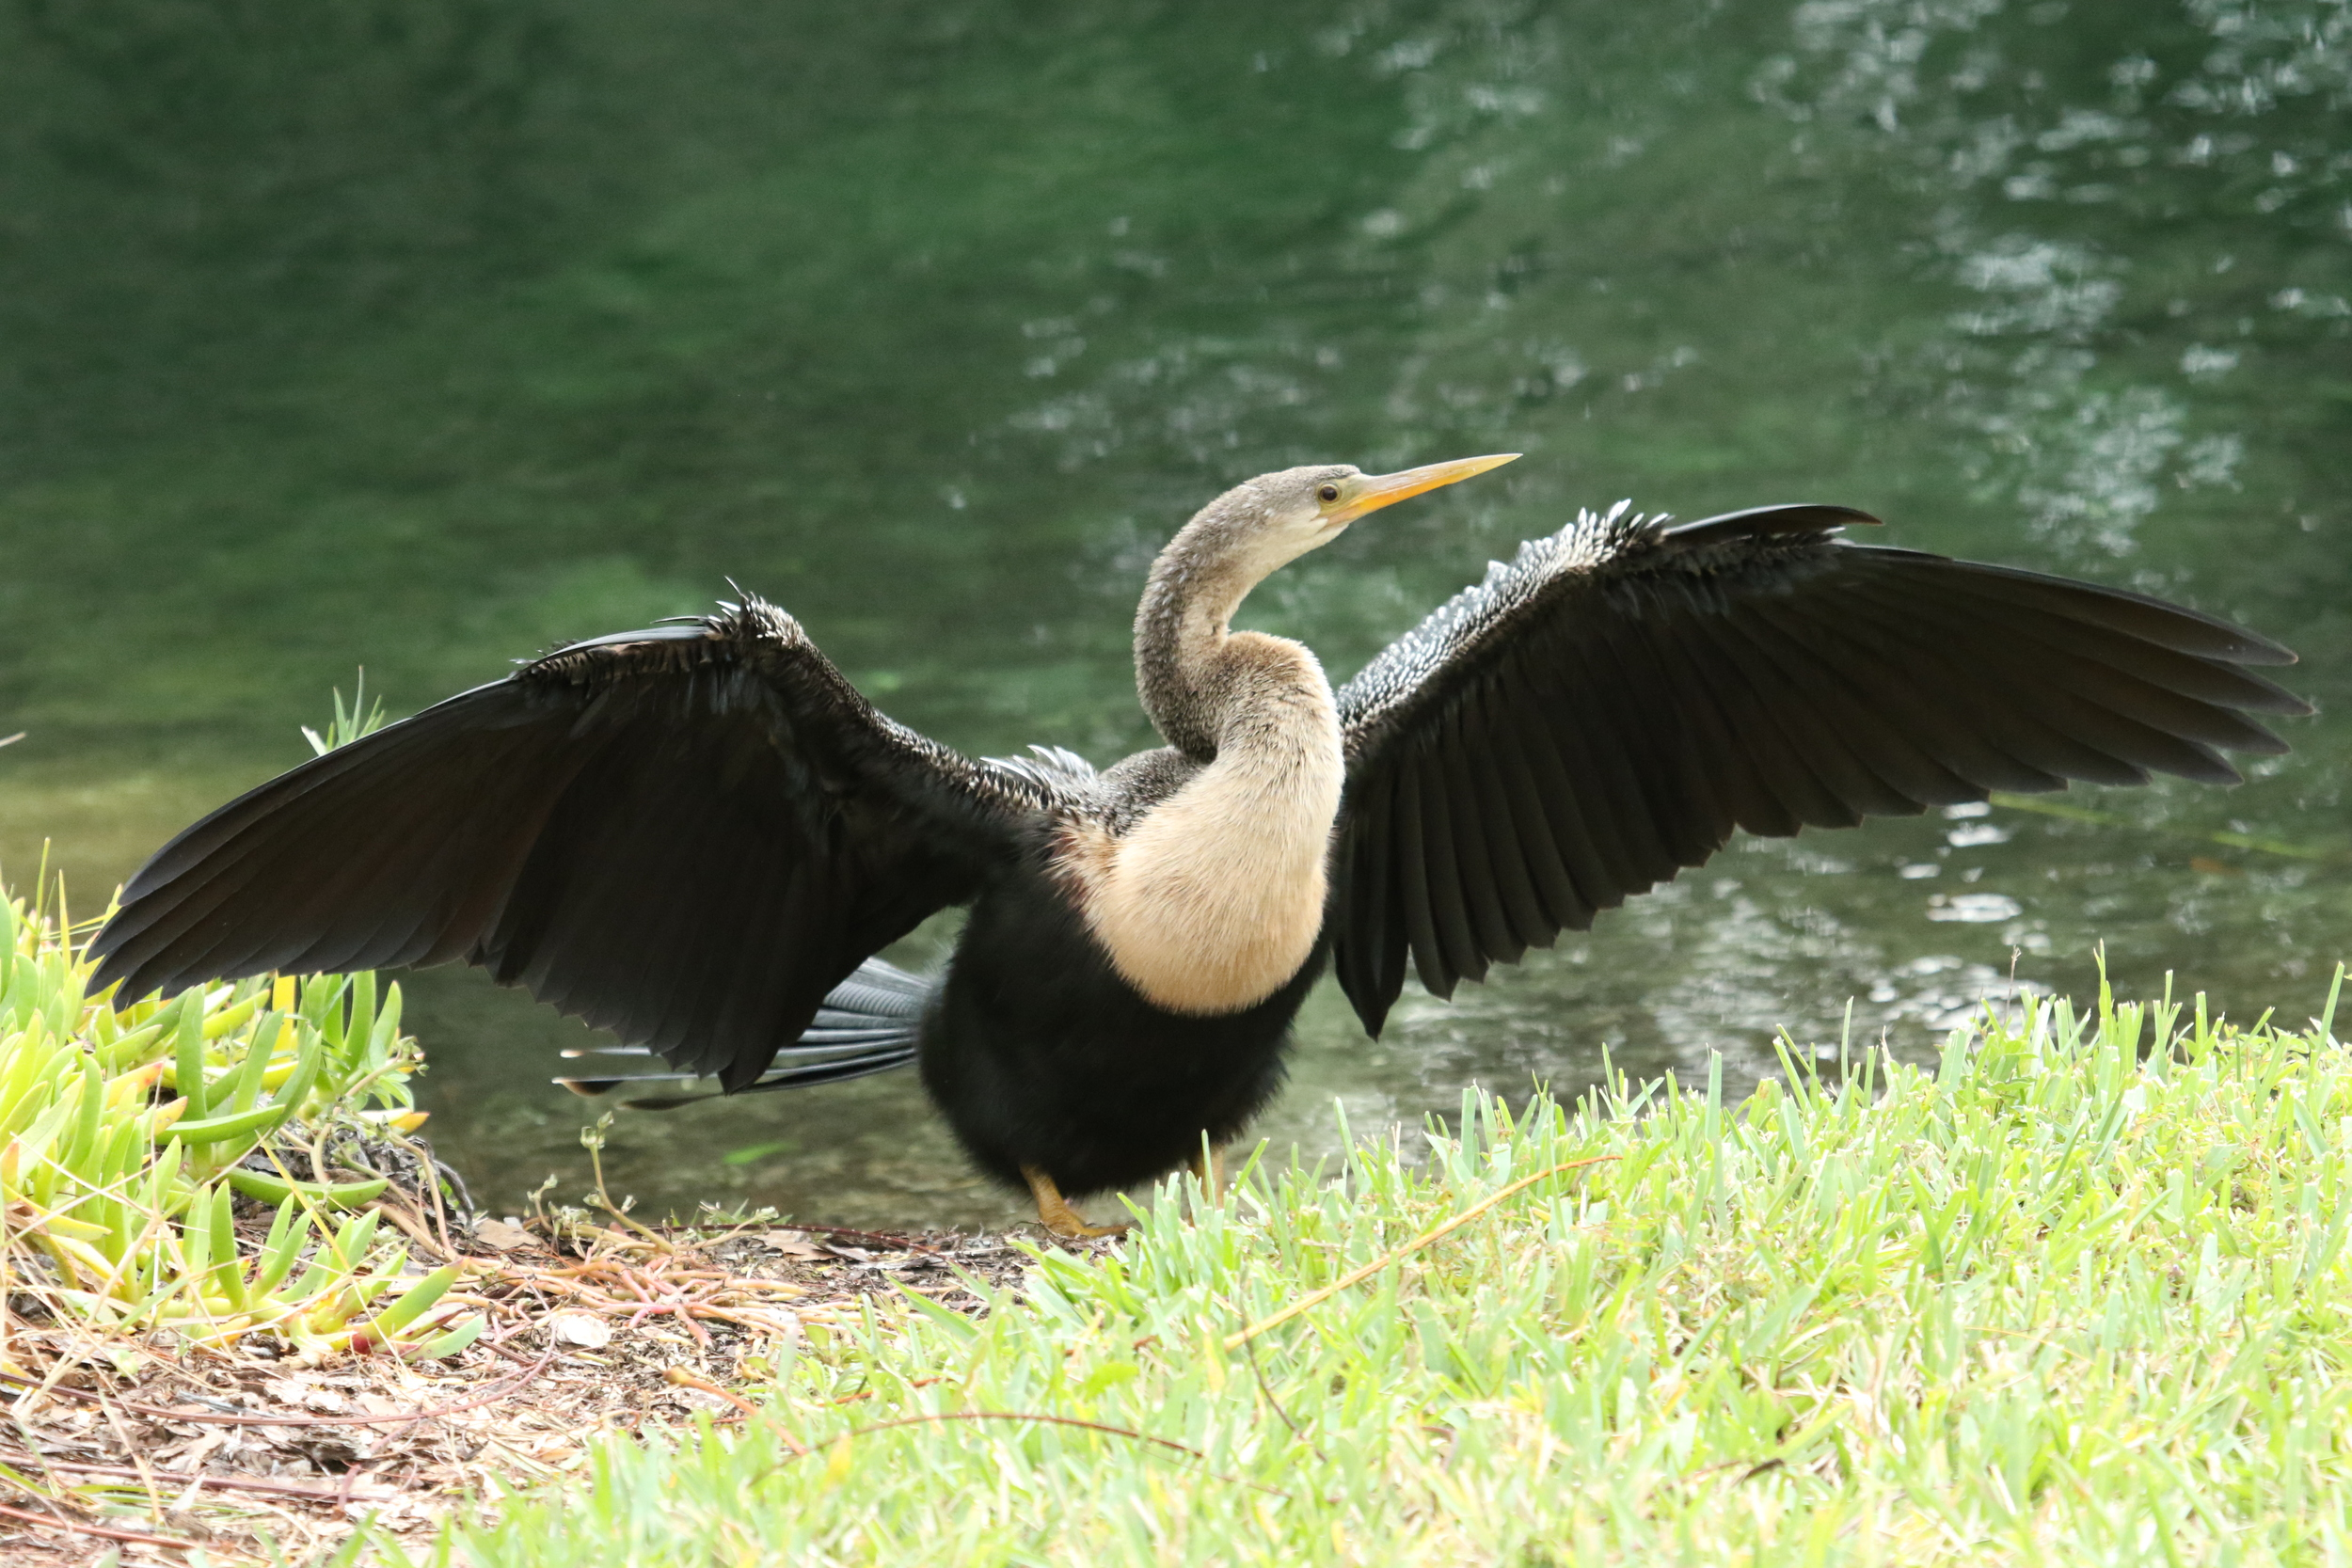 Female Anhinga at the Ringling Brothers Circus Museum in Sarasota..